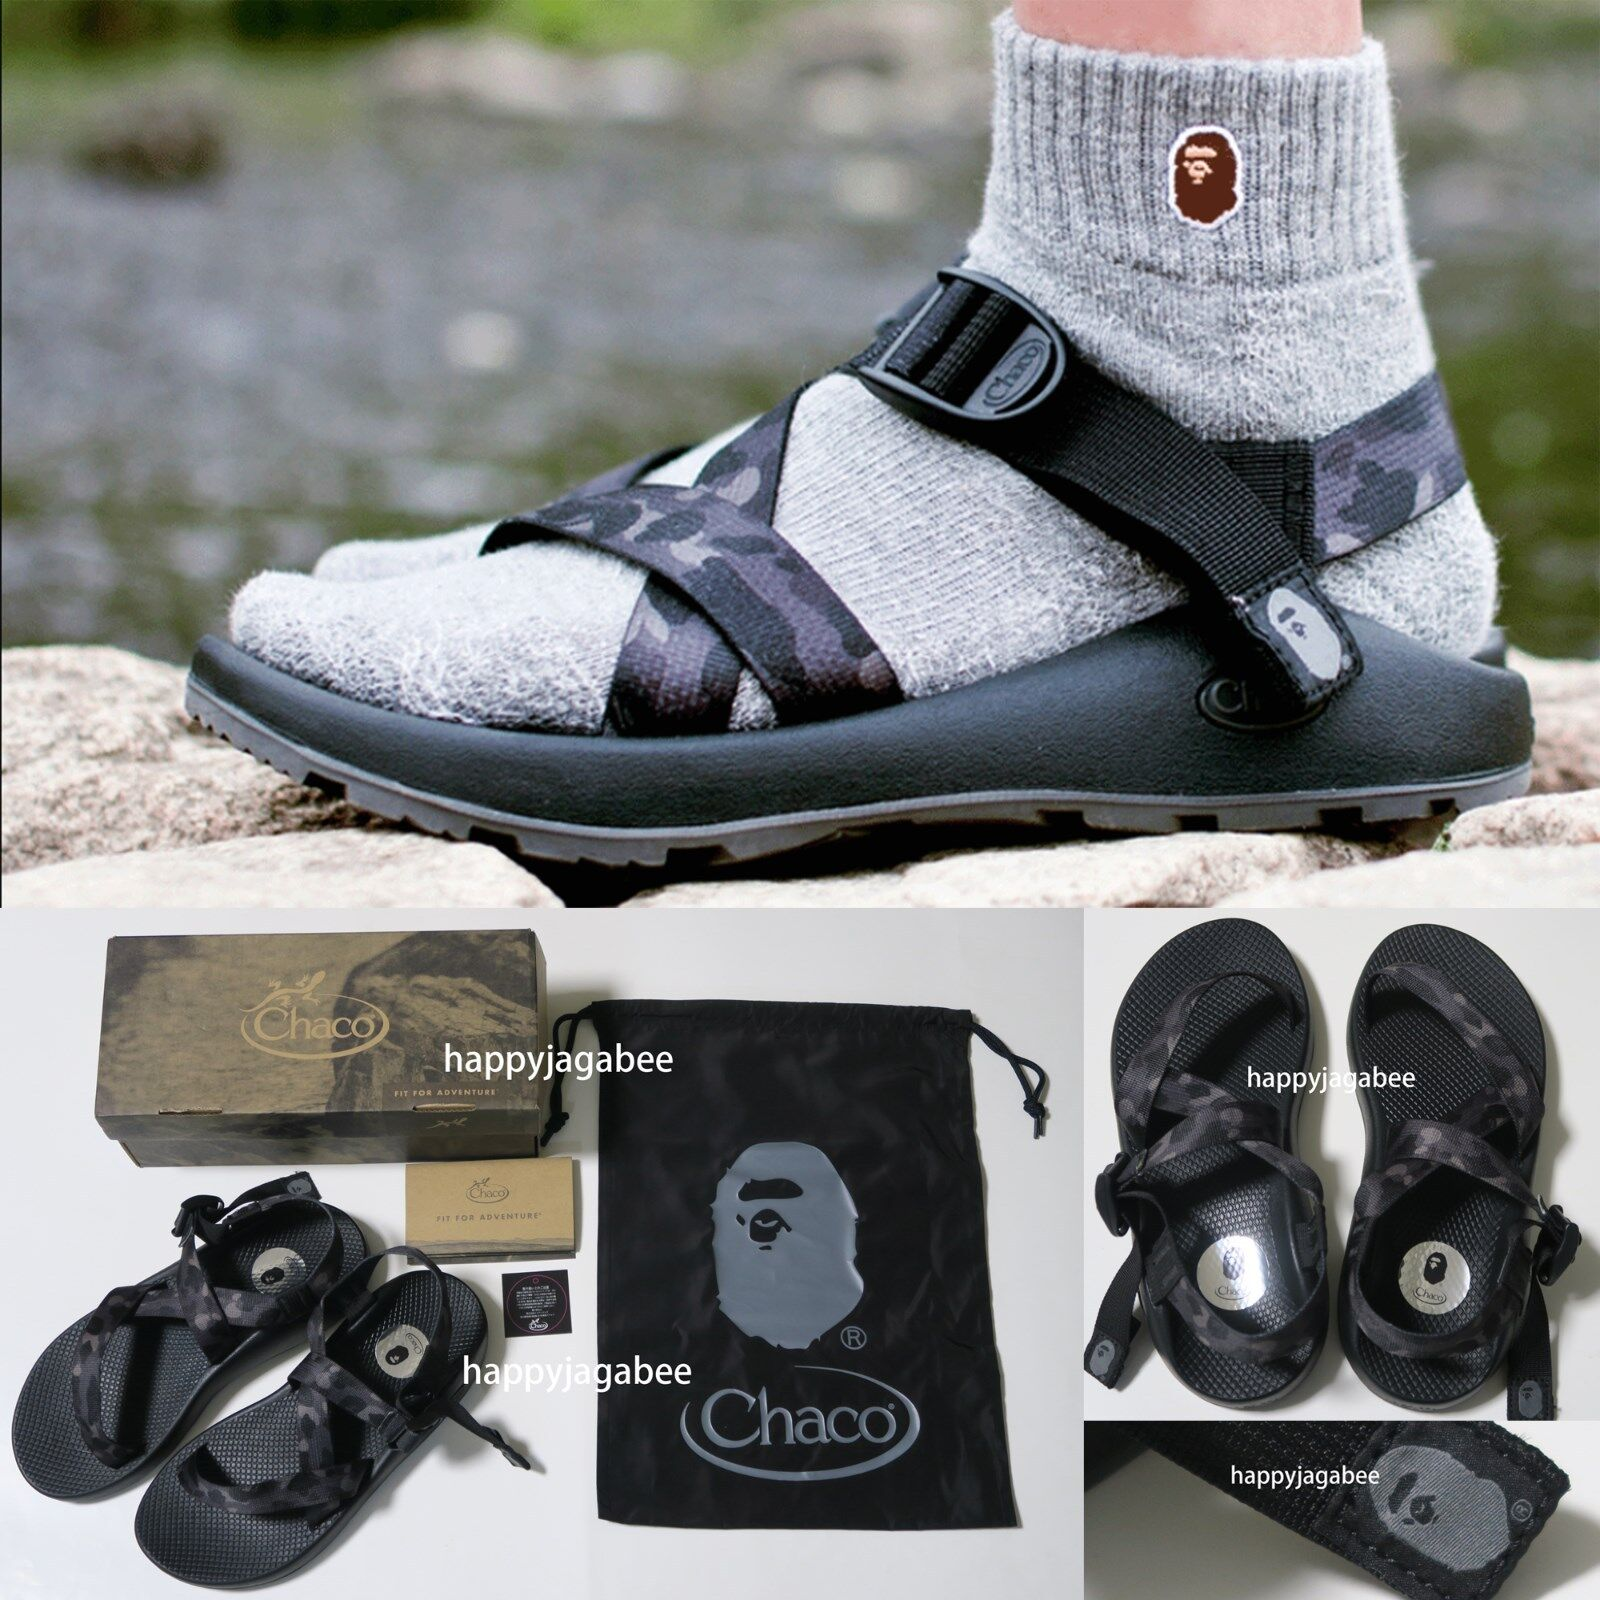 A BATHING APE Men's Footwear CHACO x BAPE Z1 SANDALS Black Camo Japan New